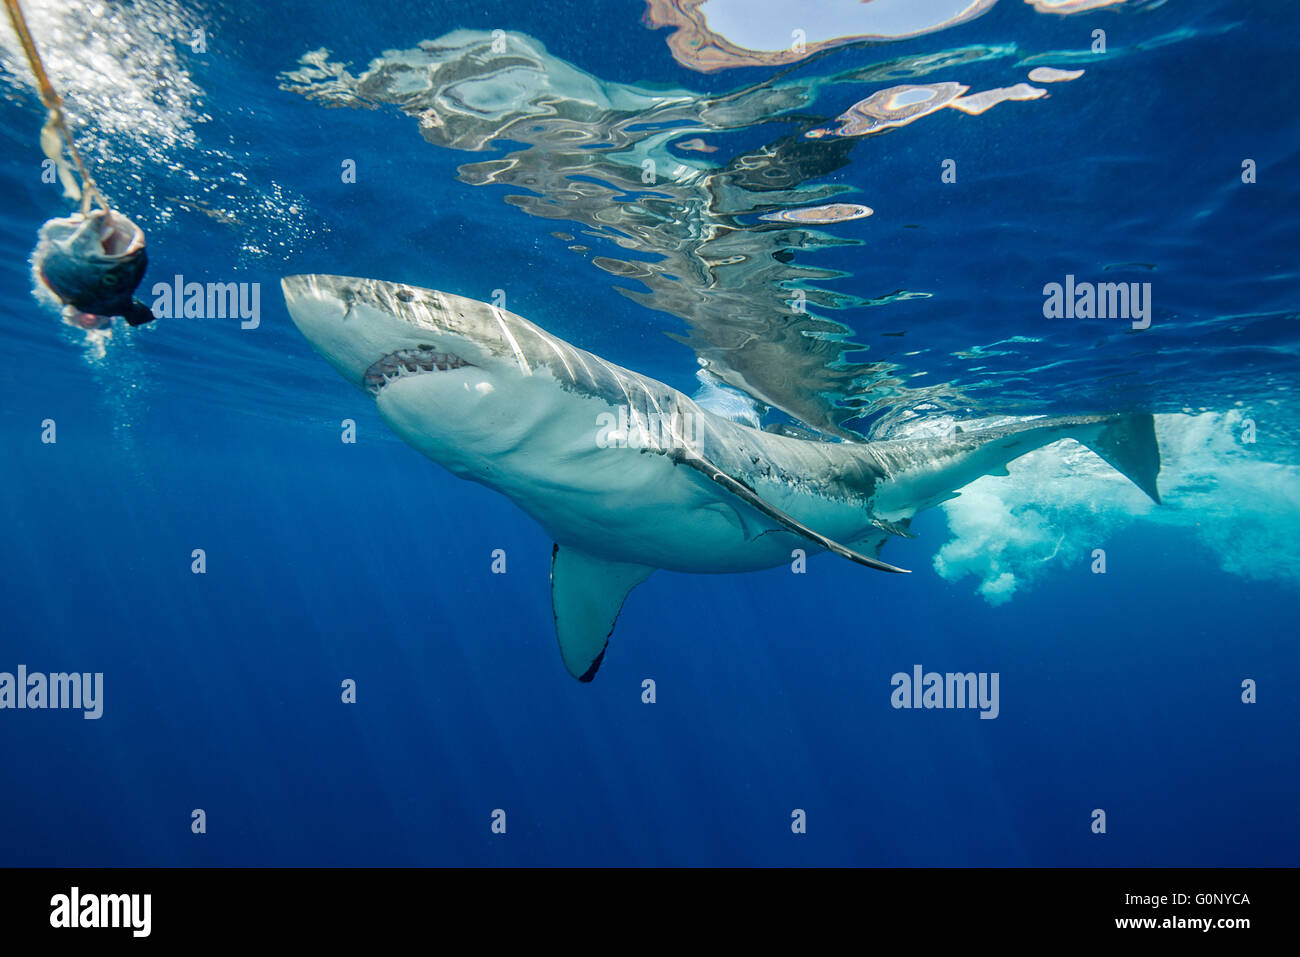 Great white shark underwater at Guadalupe Island, Mexico - Stock Image